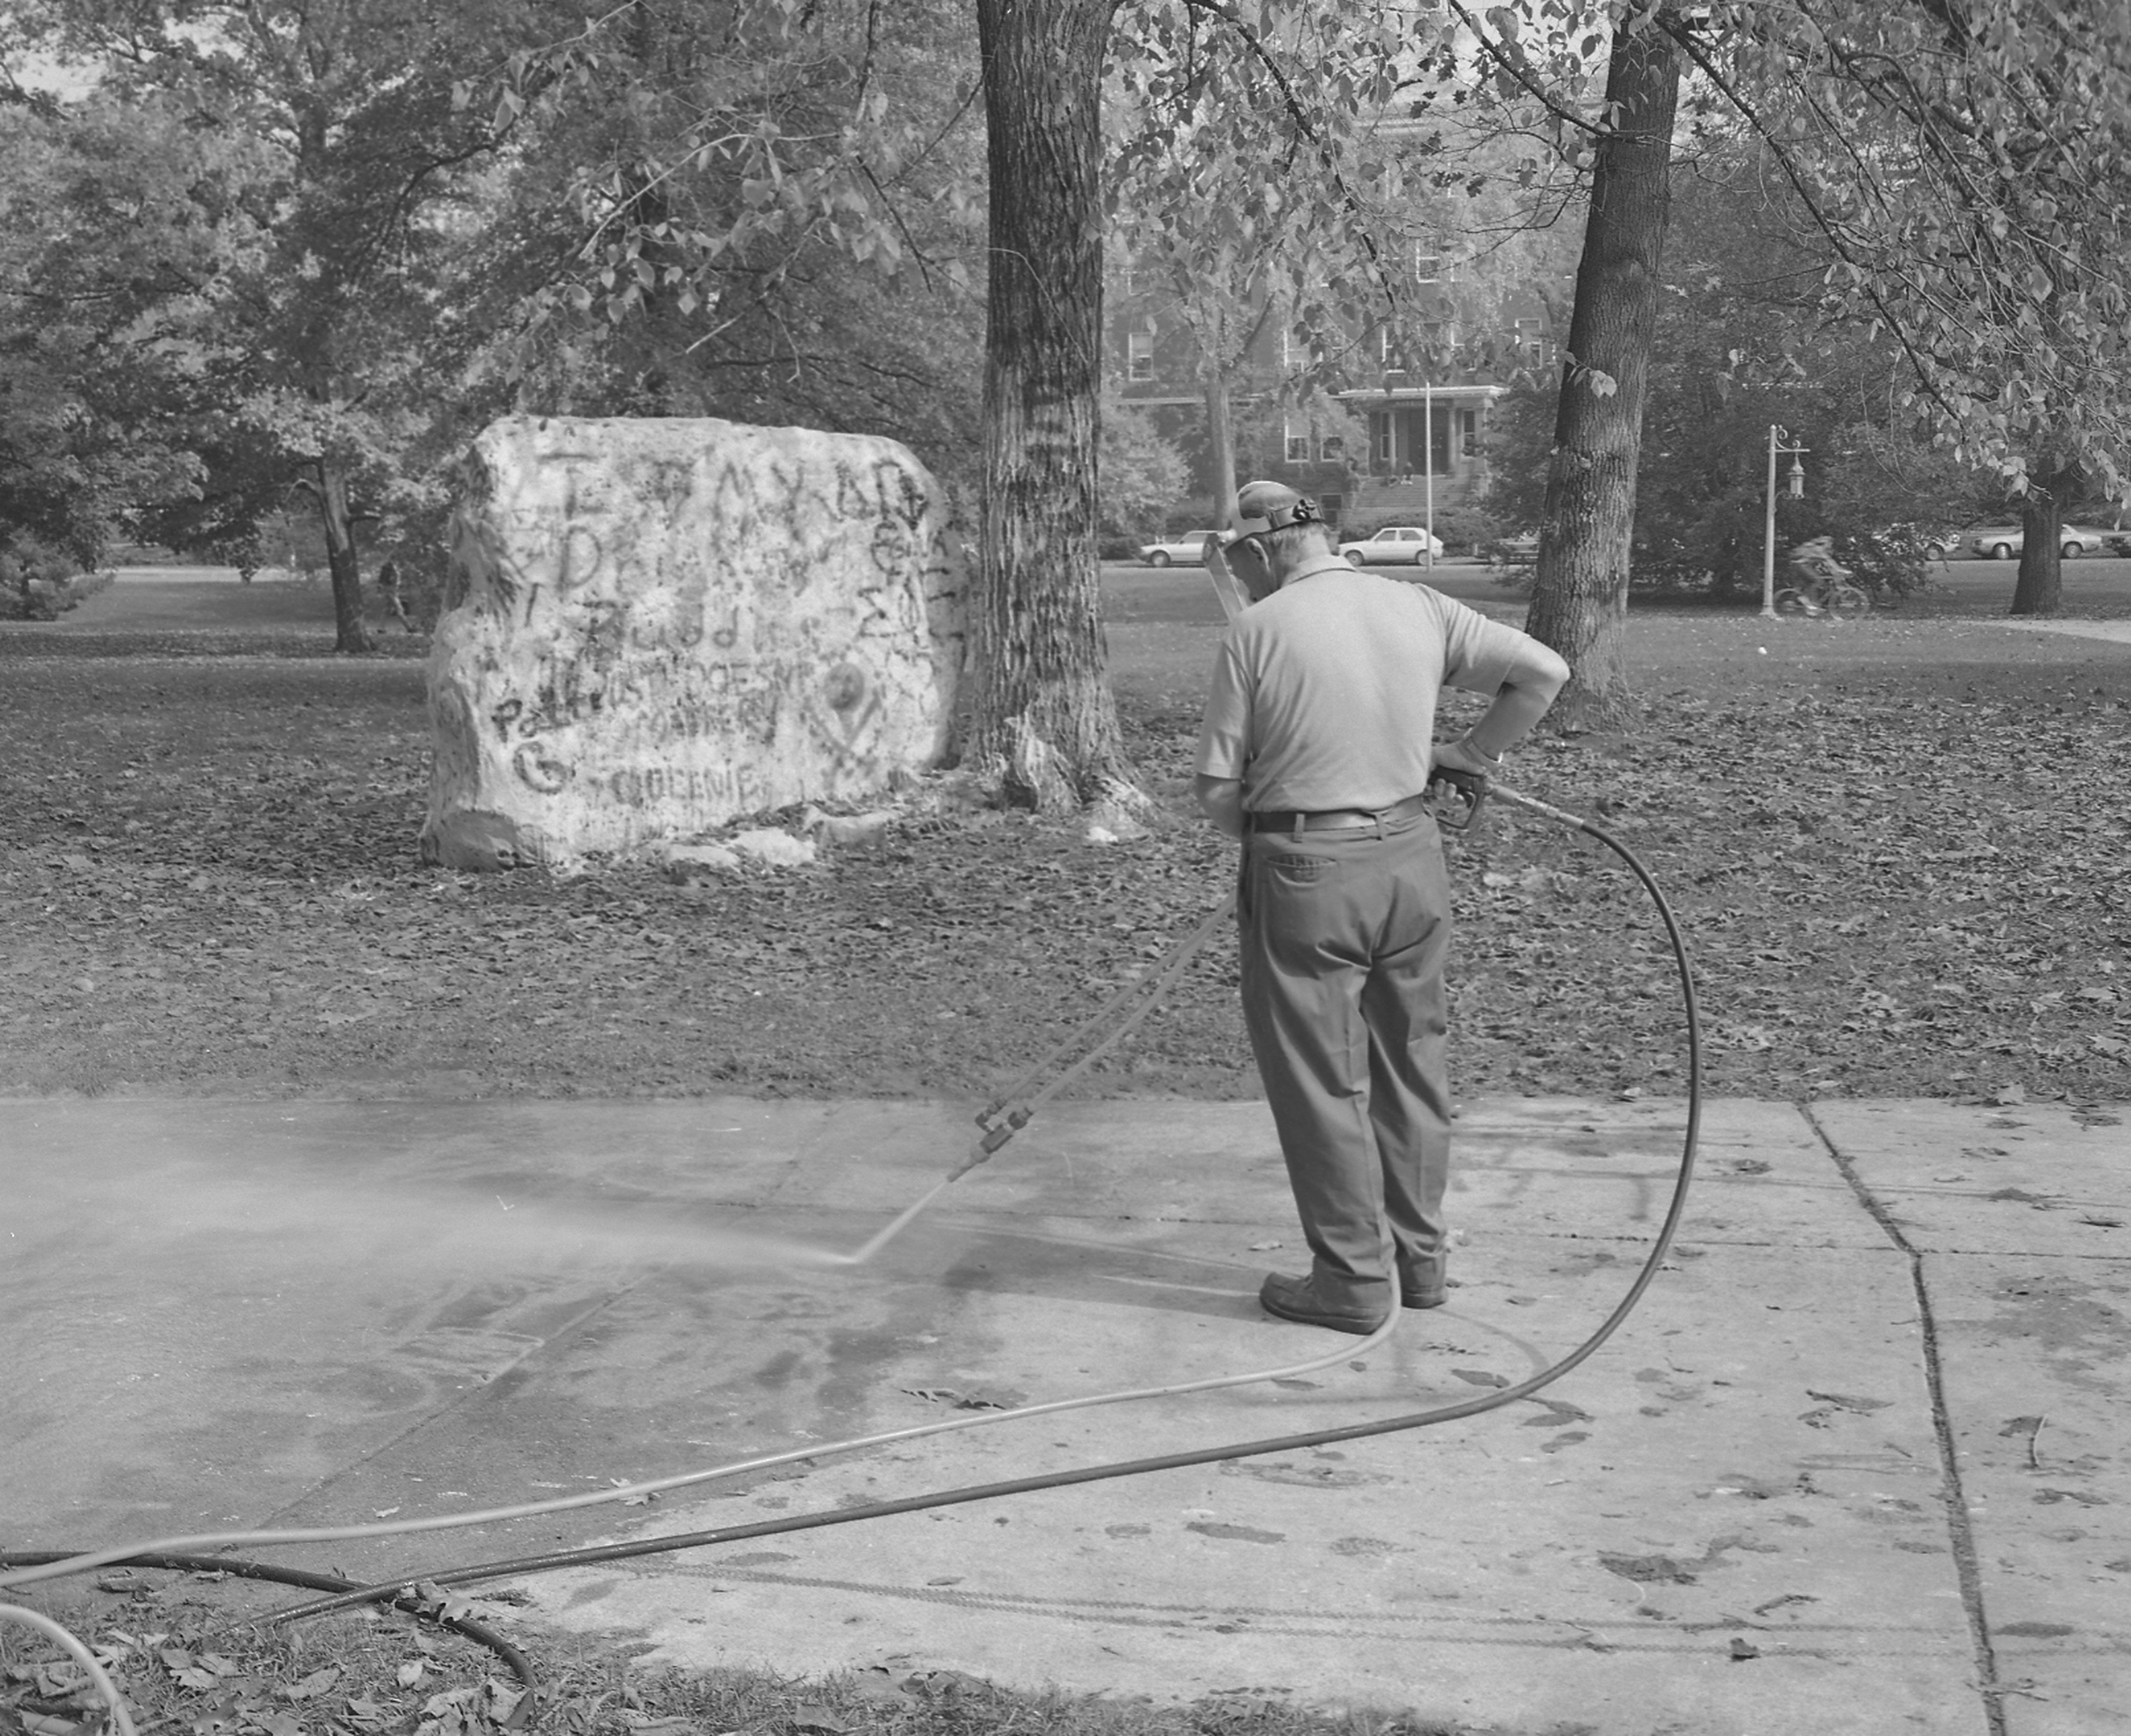 Sidewalk being cleaned next to the Rock, October 16, 1984